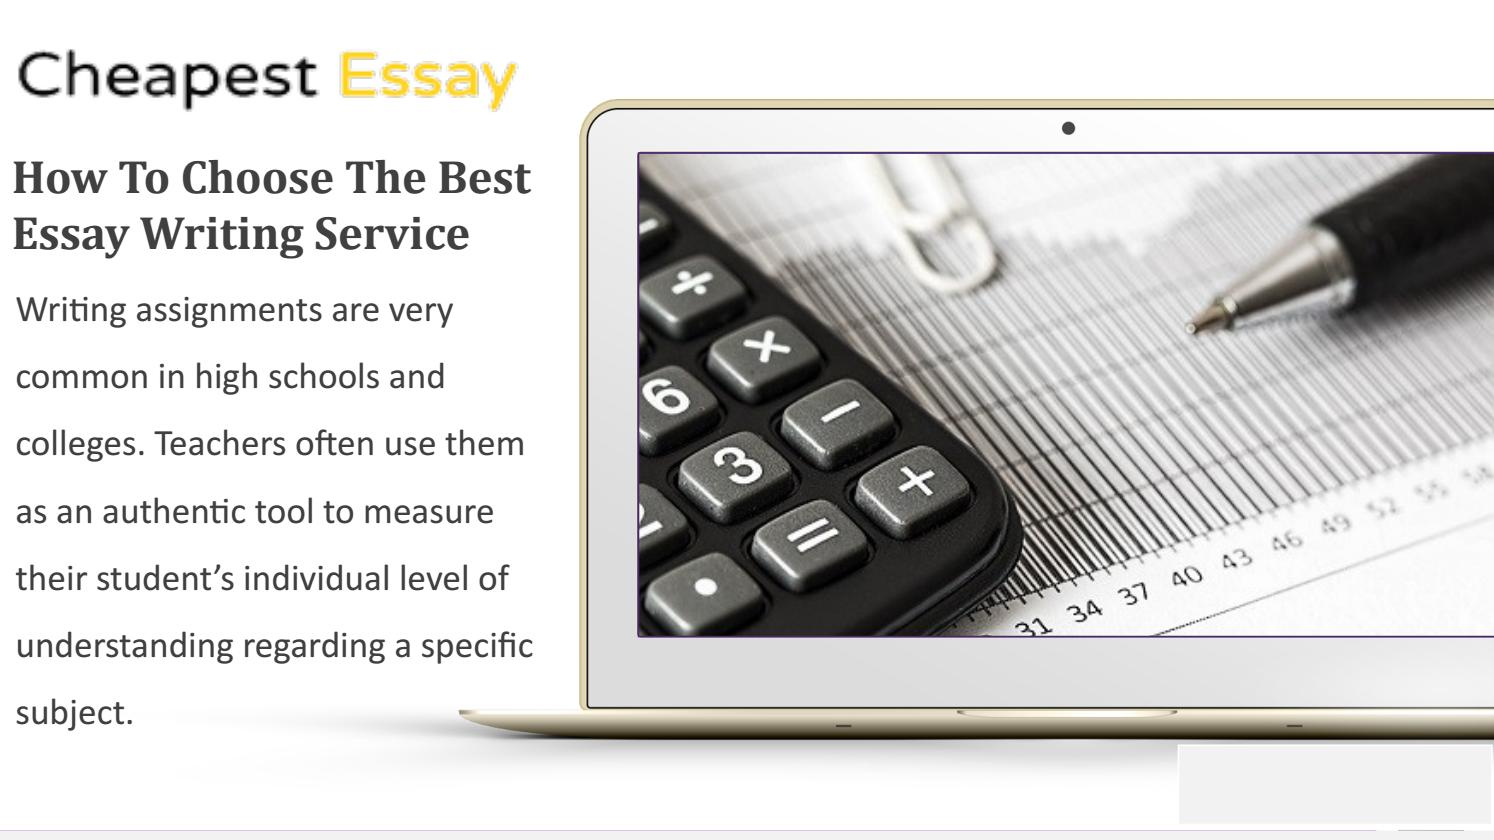 Popular cheap essay writers services for school dissertation abstract writing for hire au